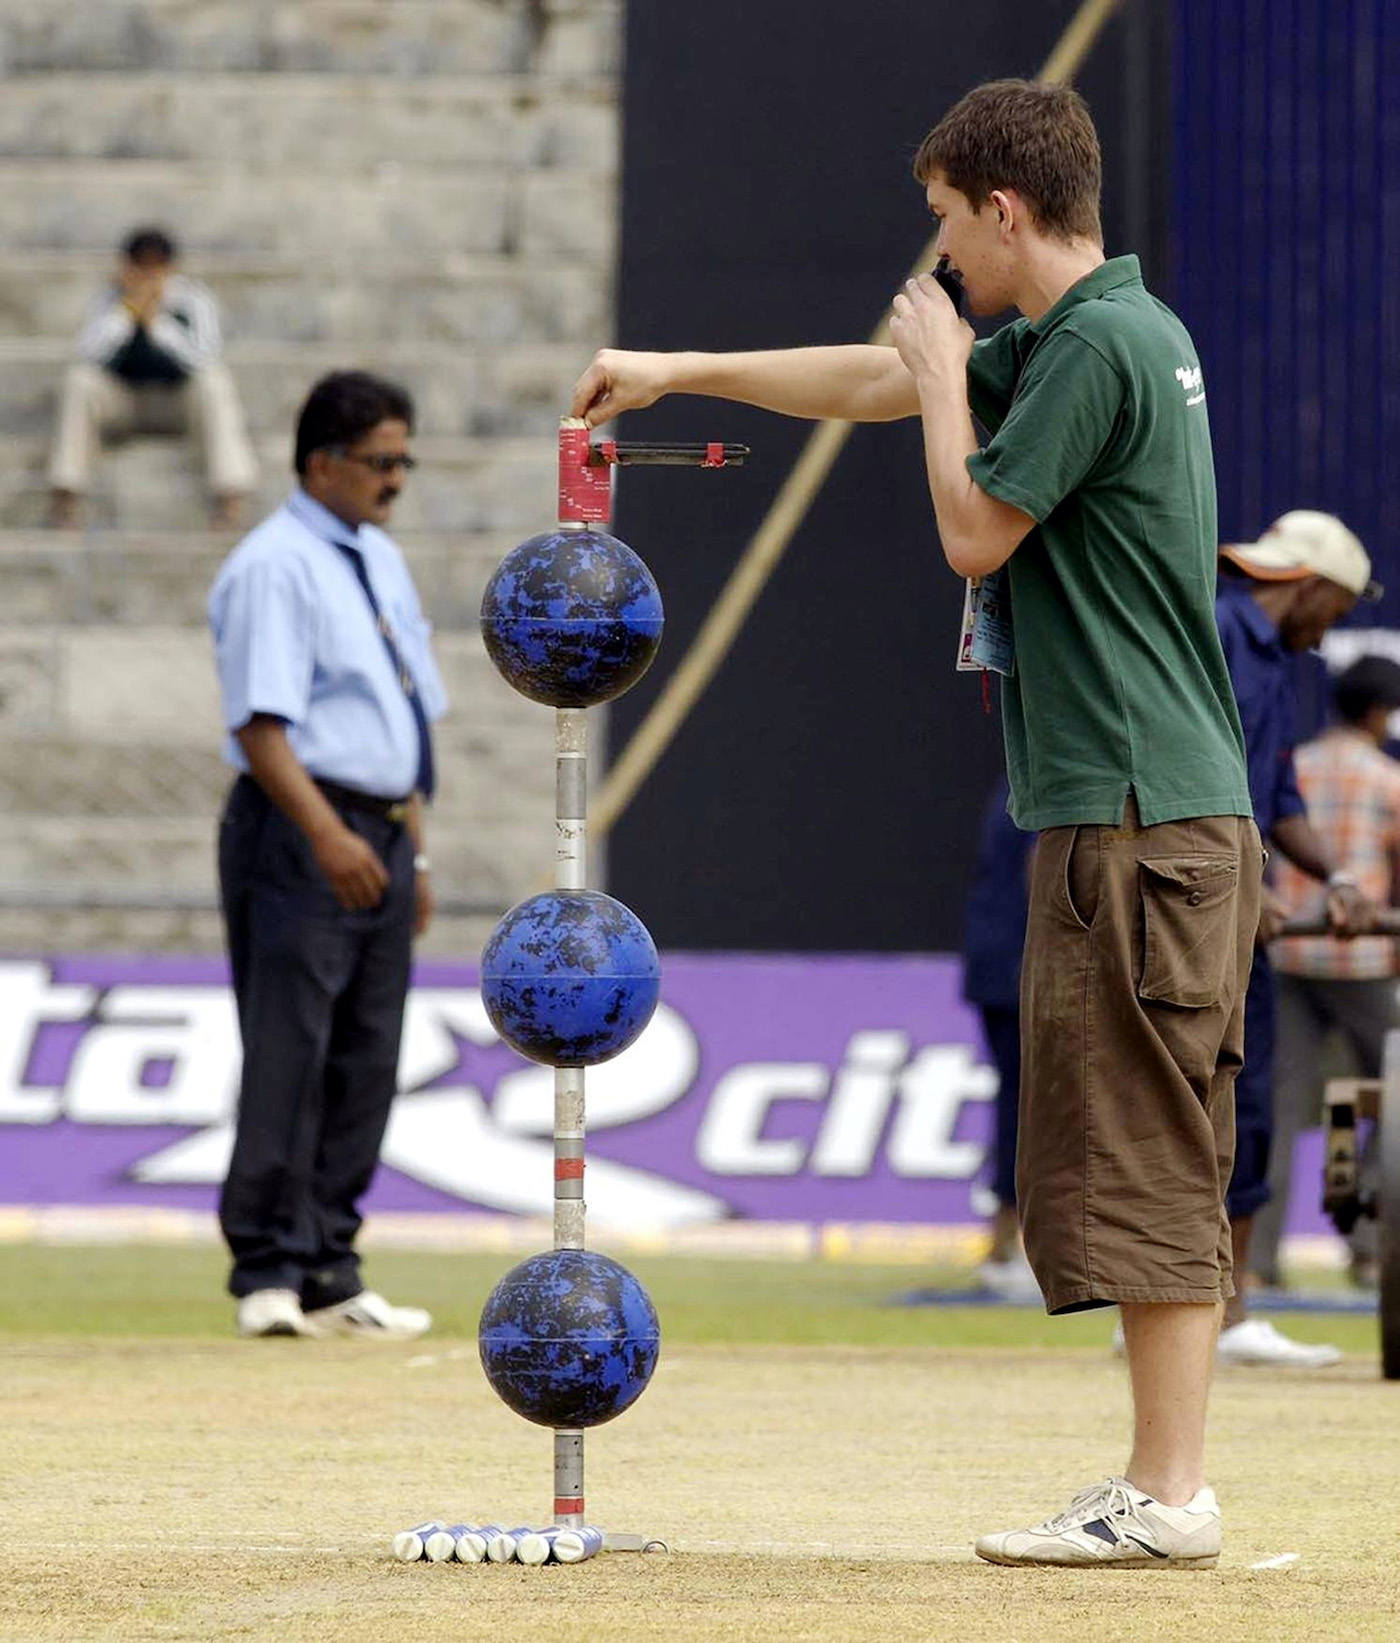 An operator sets up the Hawk-Eye system, calibrating it to the pitch in Guwahati, for the fifth ODI between India and England in 2006